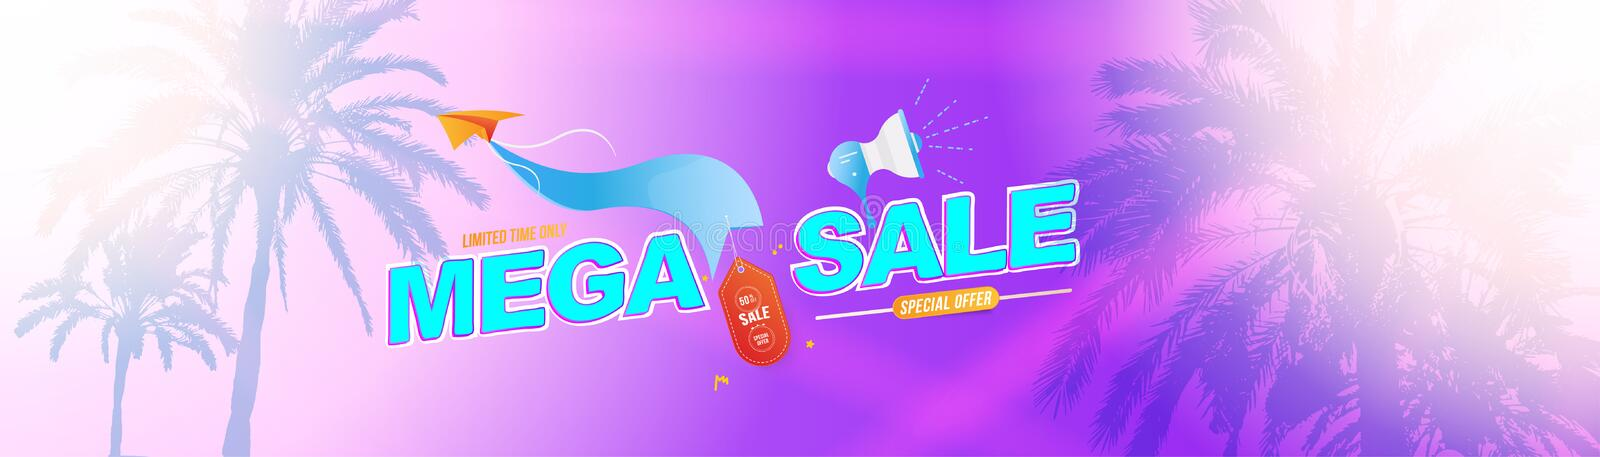 Mega Sale 50 banner template design with light effects and palm trees. Loudspeaker and paper airplane with special offer vector illustration